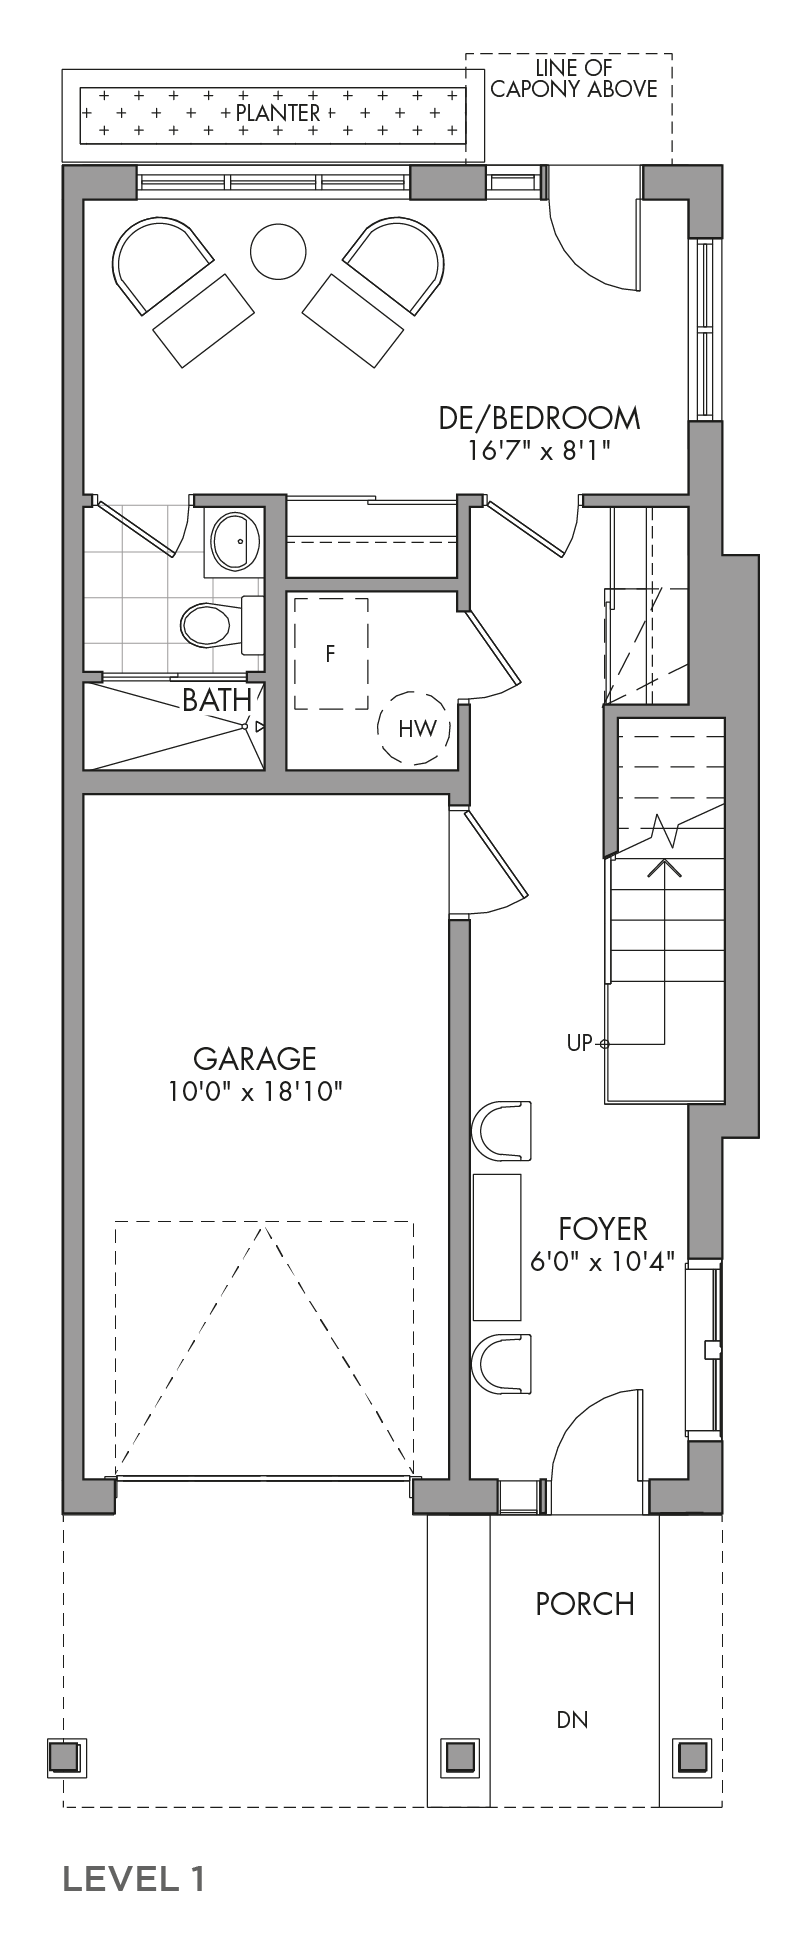 The Mulberrylane, FloorPlan Level1